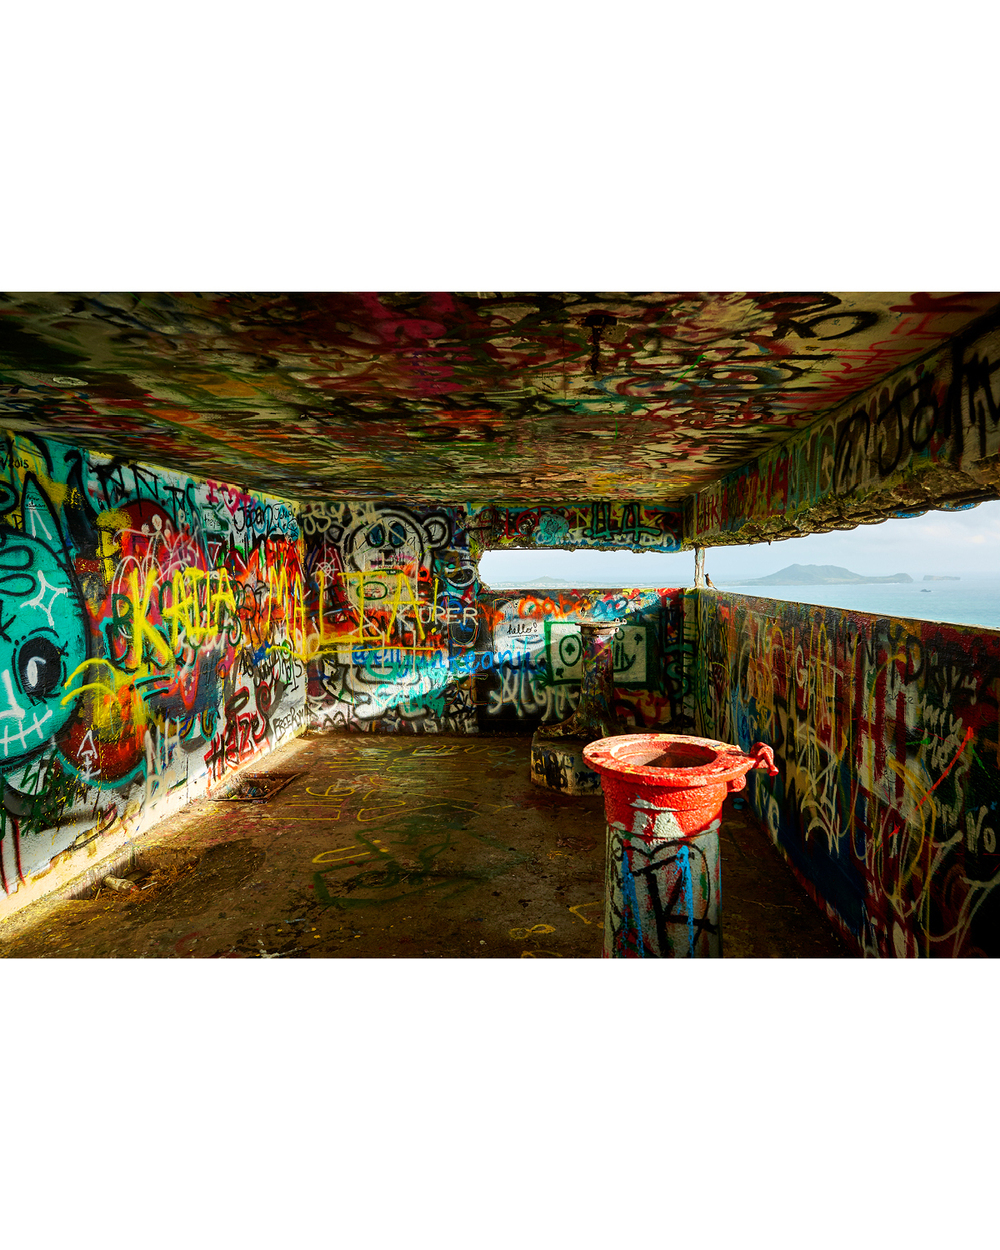 INTERIOR OF PILLBOX ONE